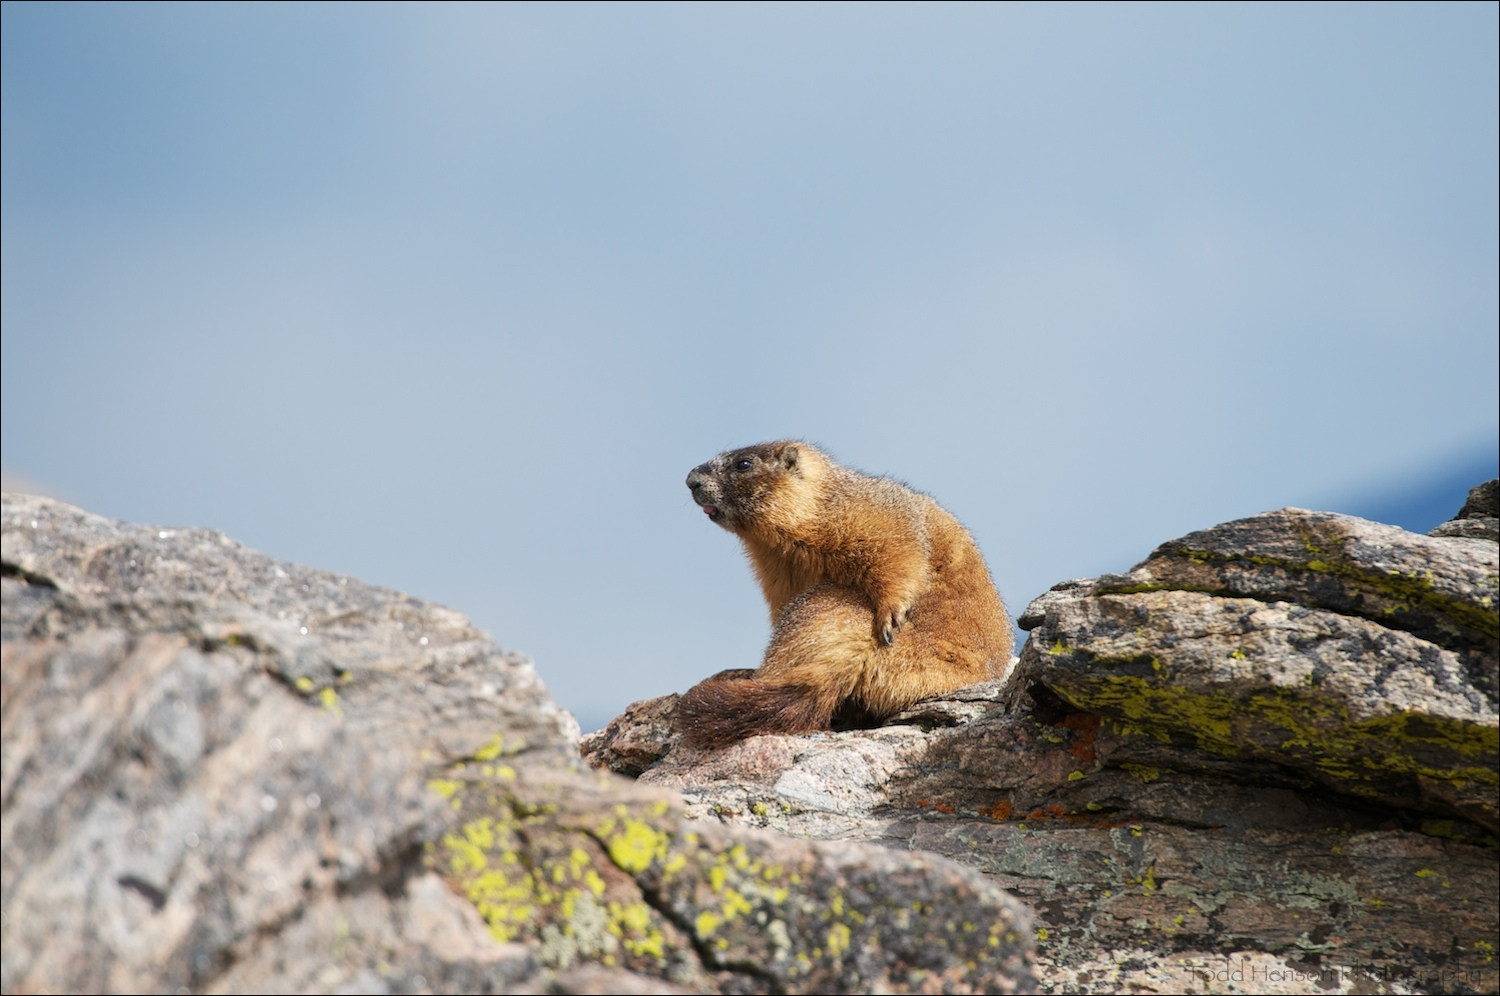 Yellow-bellied Marmot after grooming